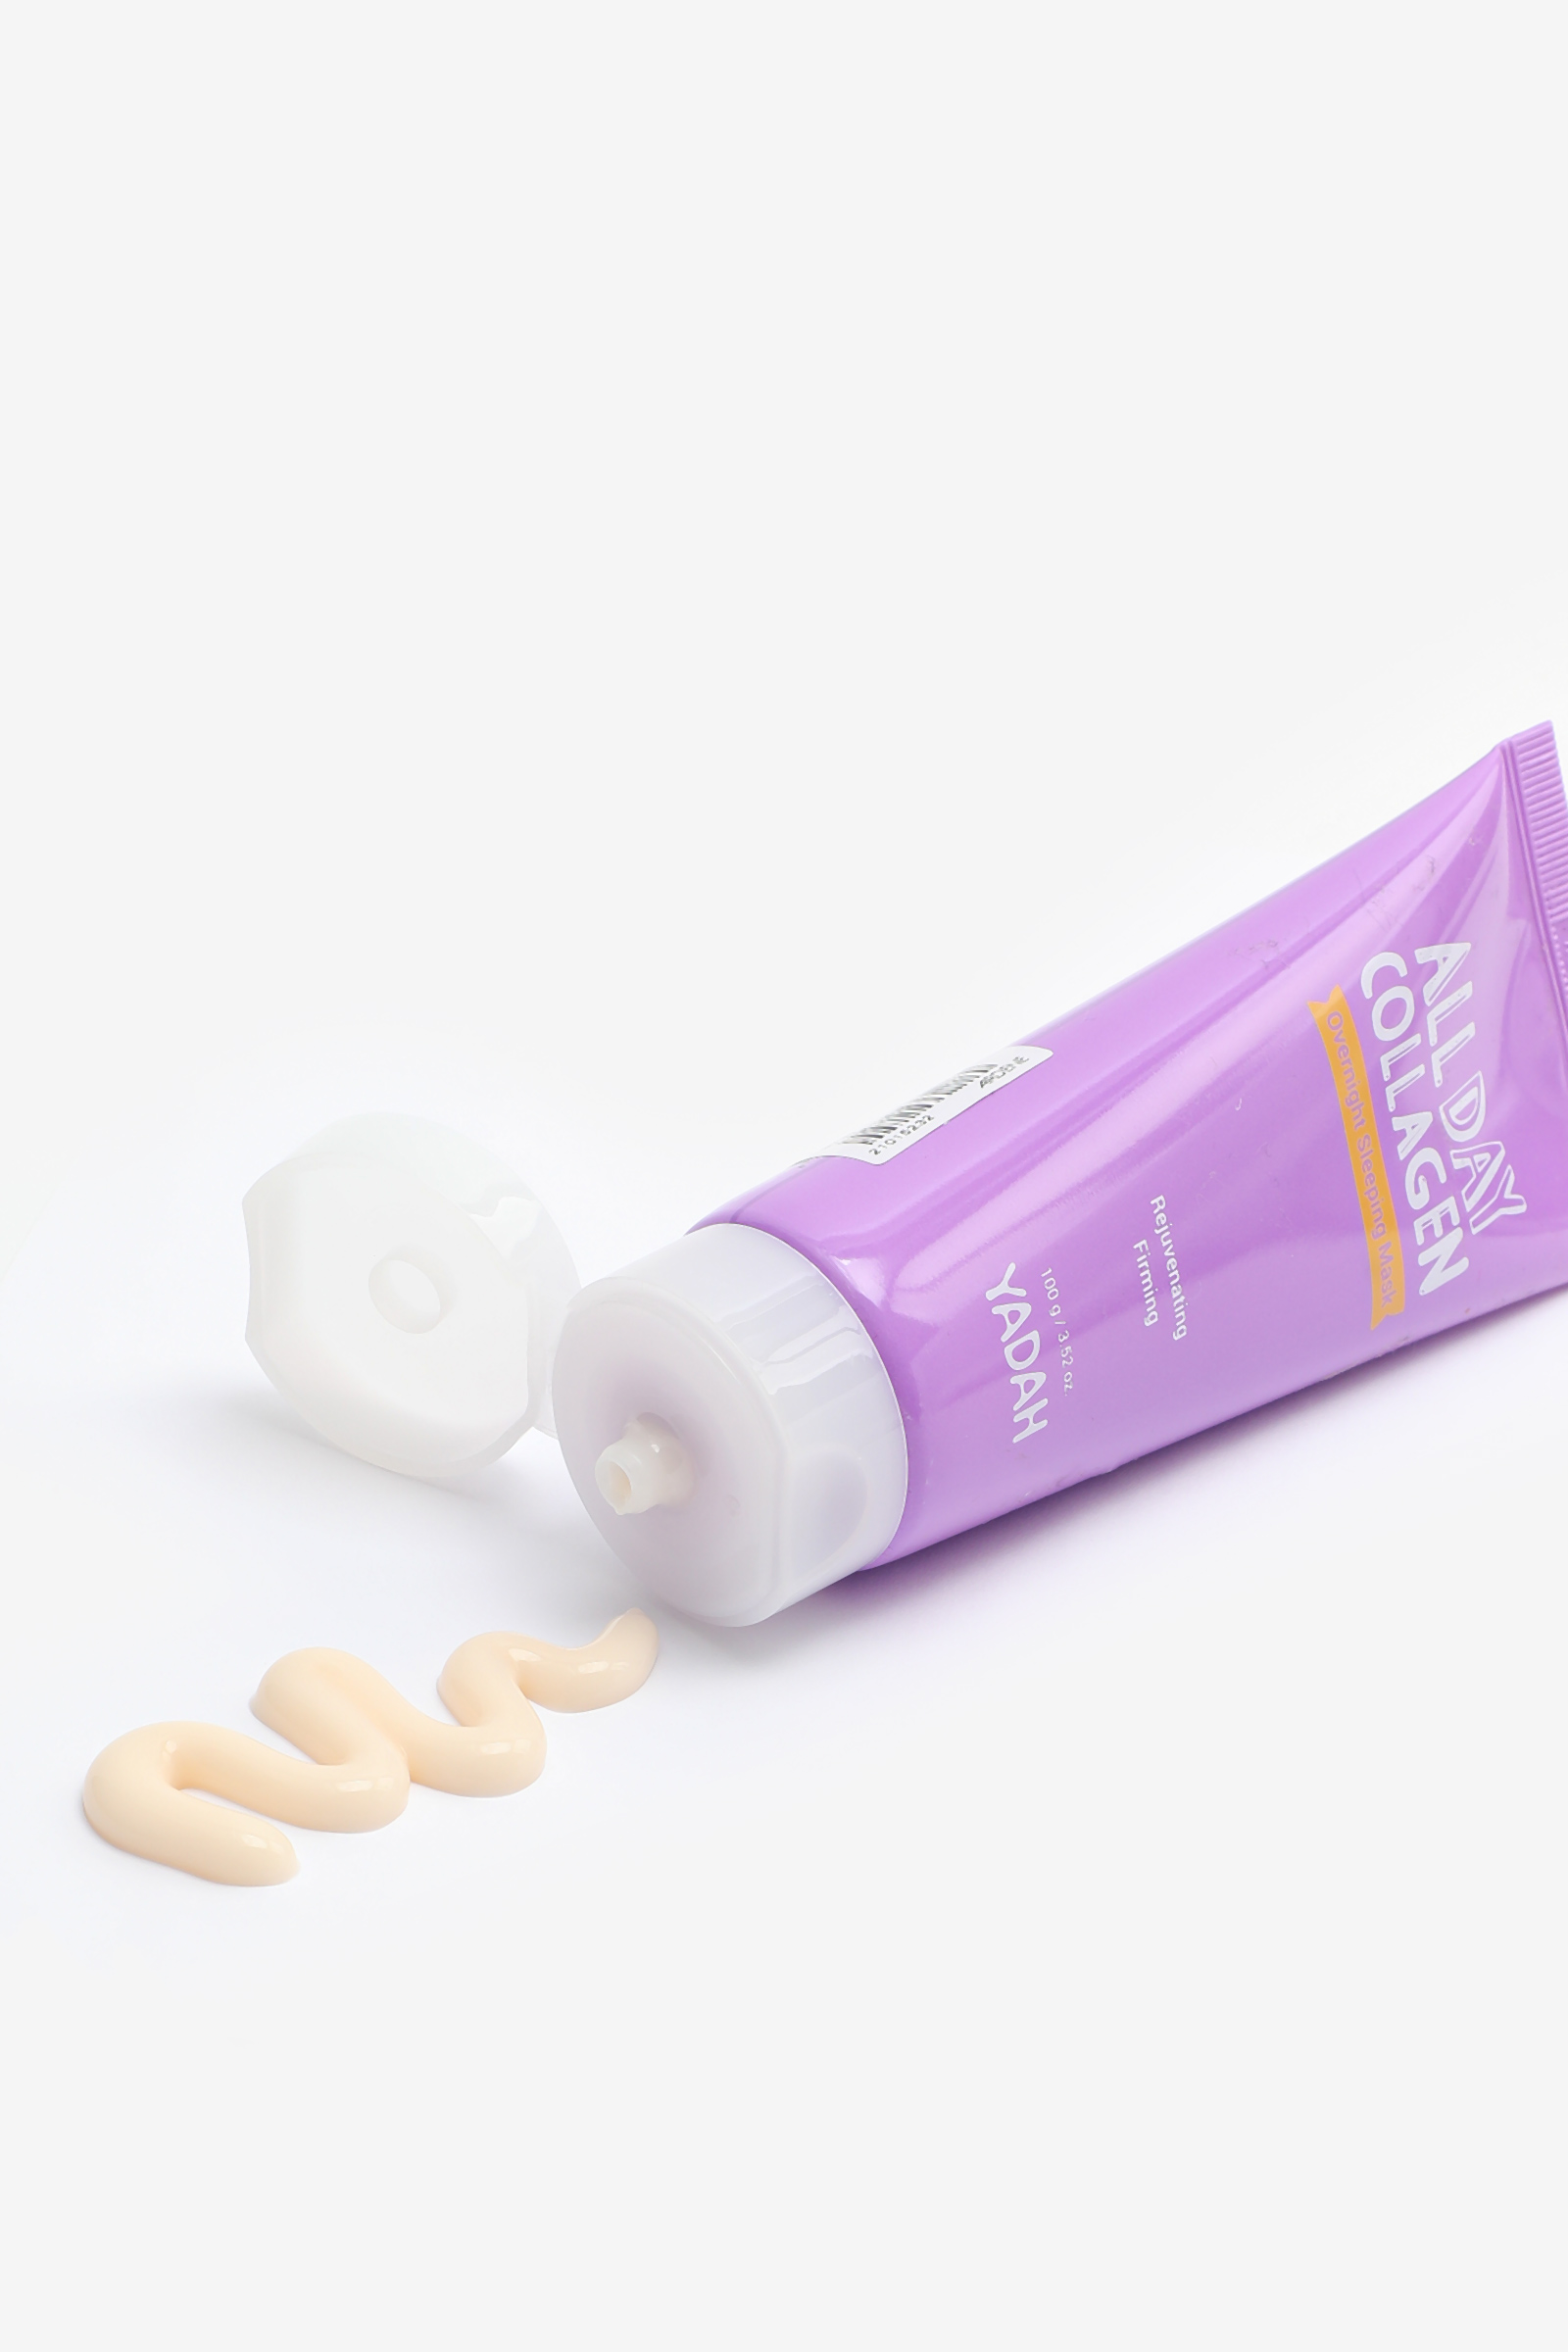 All Day Collagen Overnight Face Mask